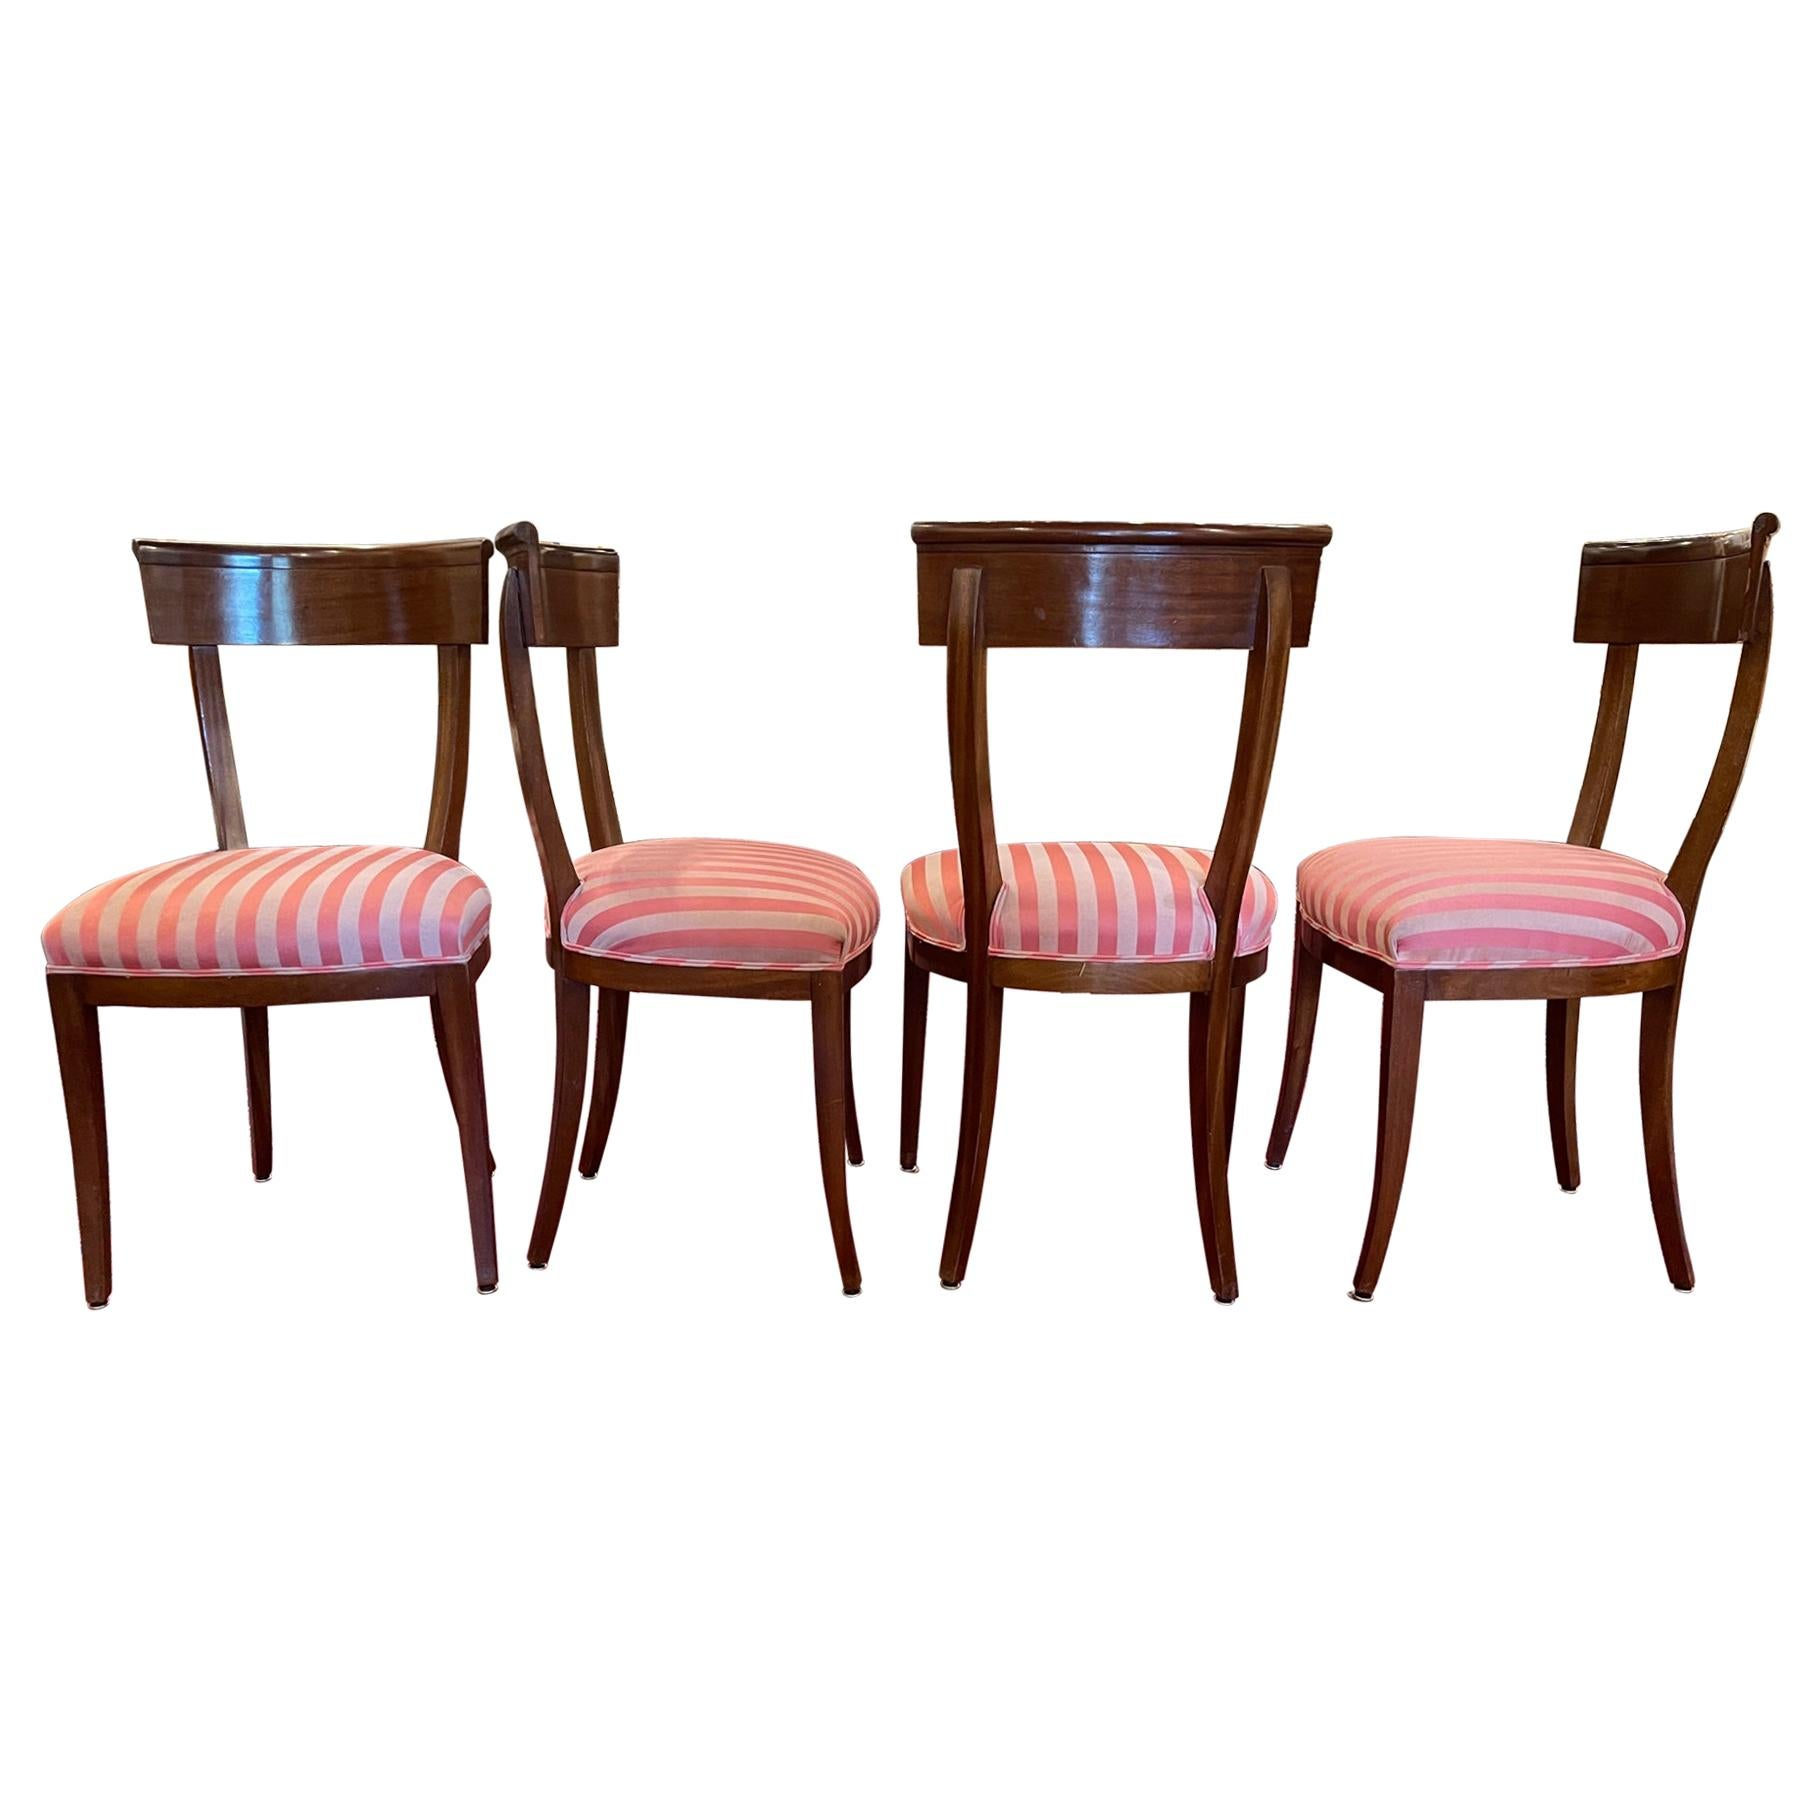 Set of Four Charles X Dining or Side Chairs, 19th Century